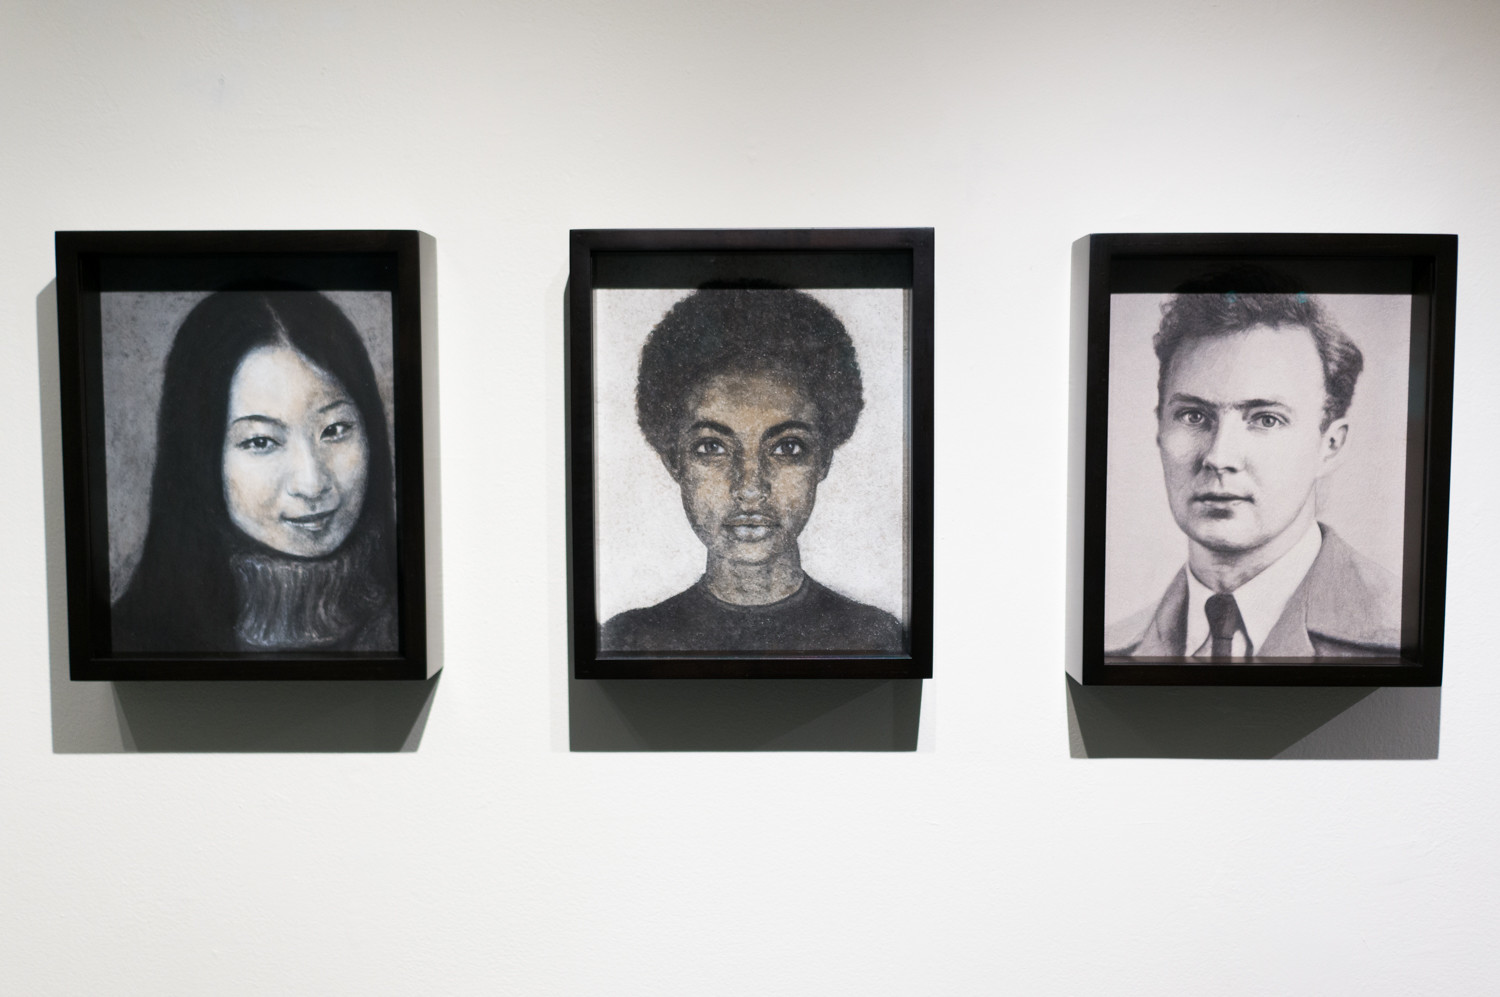 Heide Hatry's portraits of the deceased in their ashes draw the most attention at the exhibition 'It Was a Dark and Stormy Night' at Lehman College. The exhibit focuses on contemporary takes on gothic architecture and literature.